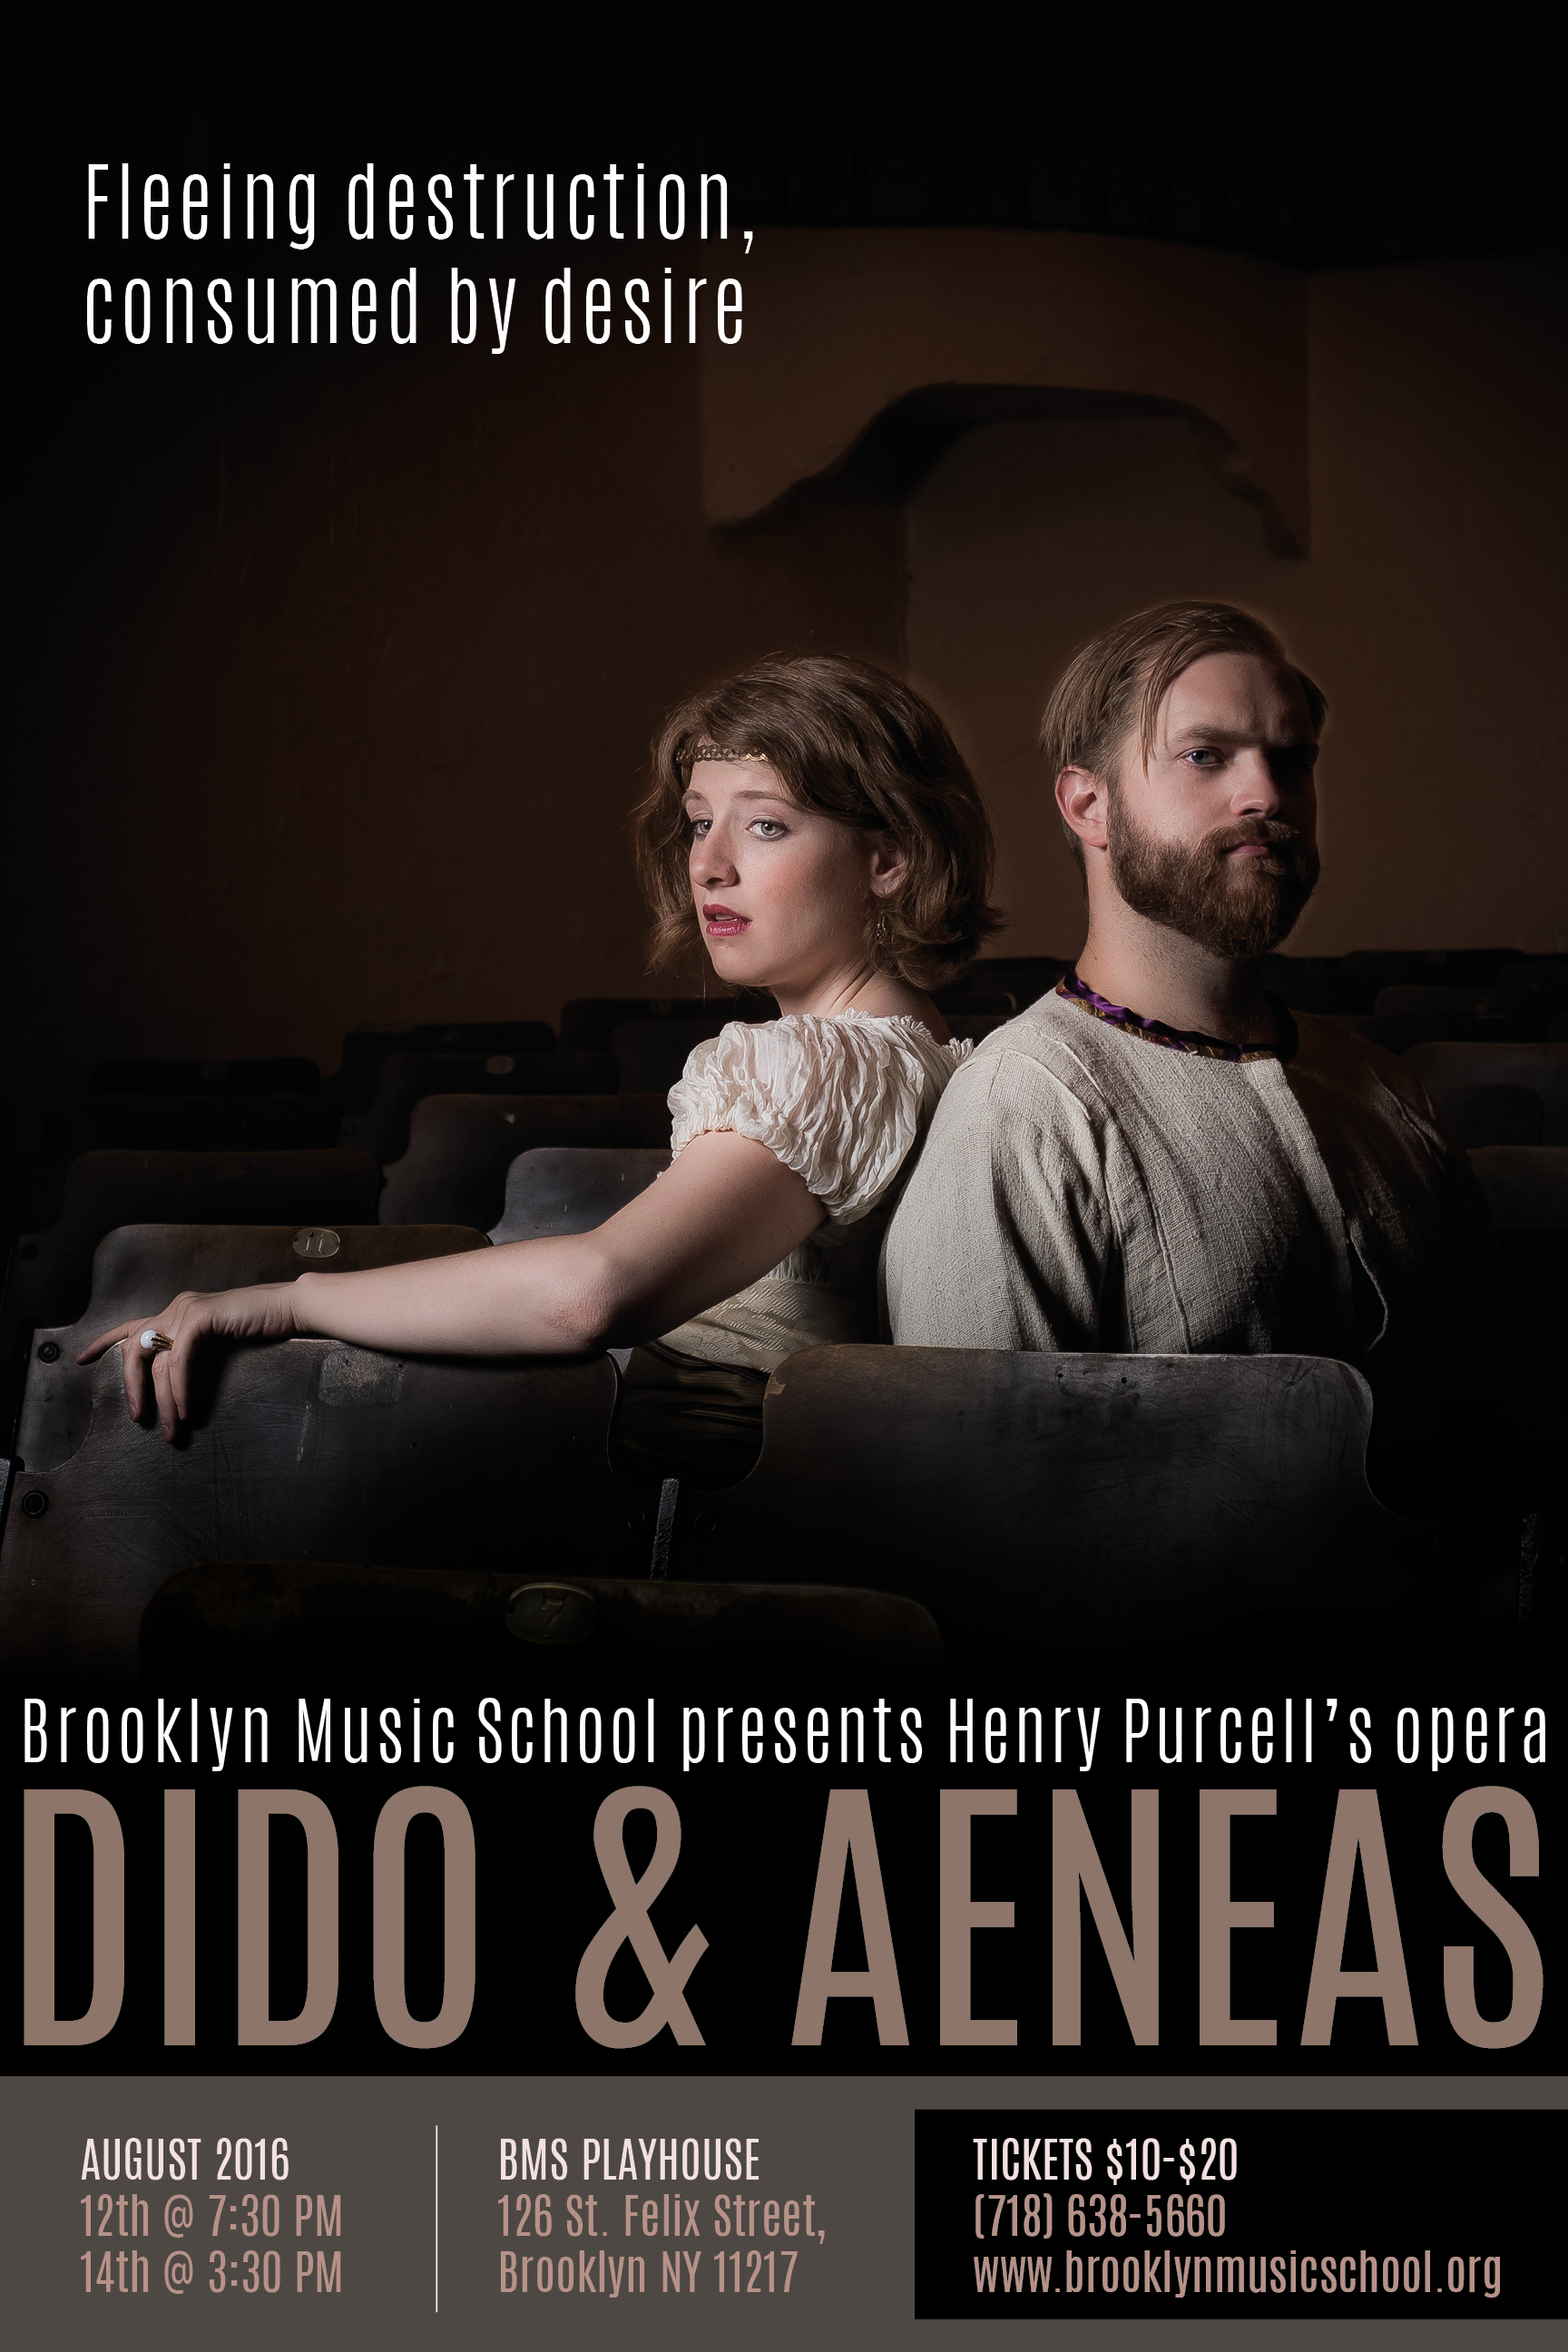 Producing Artistic Director, Dido & Aeneas (Brooklyn Music School)